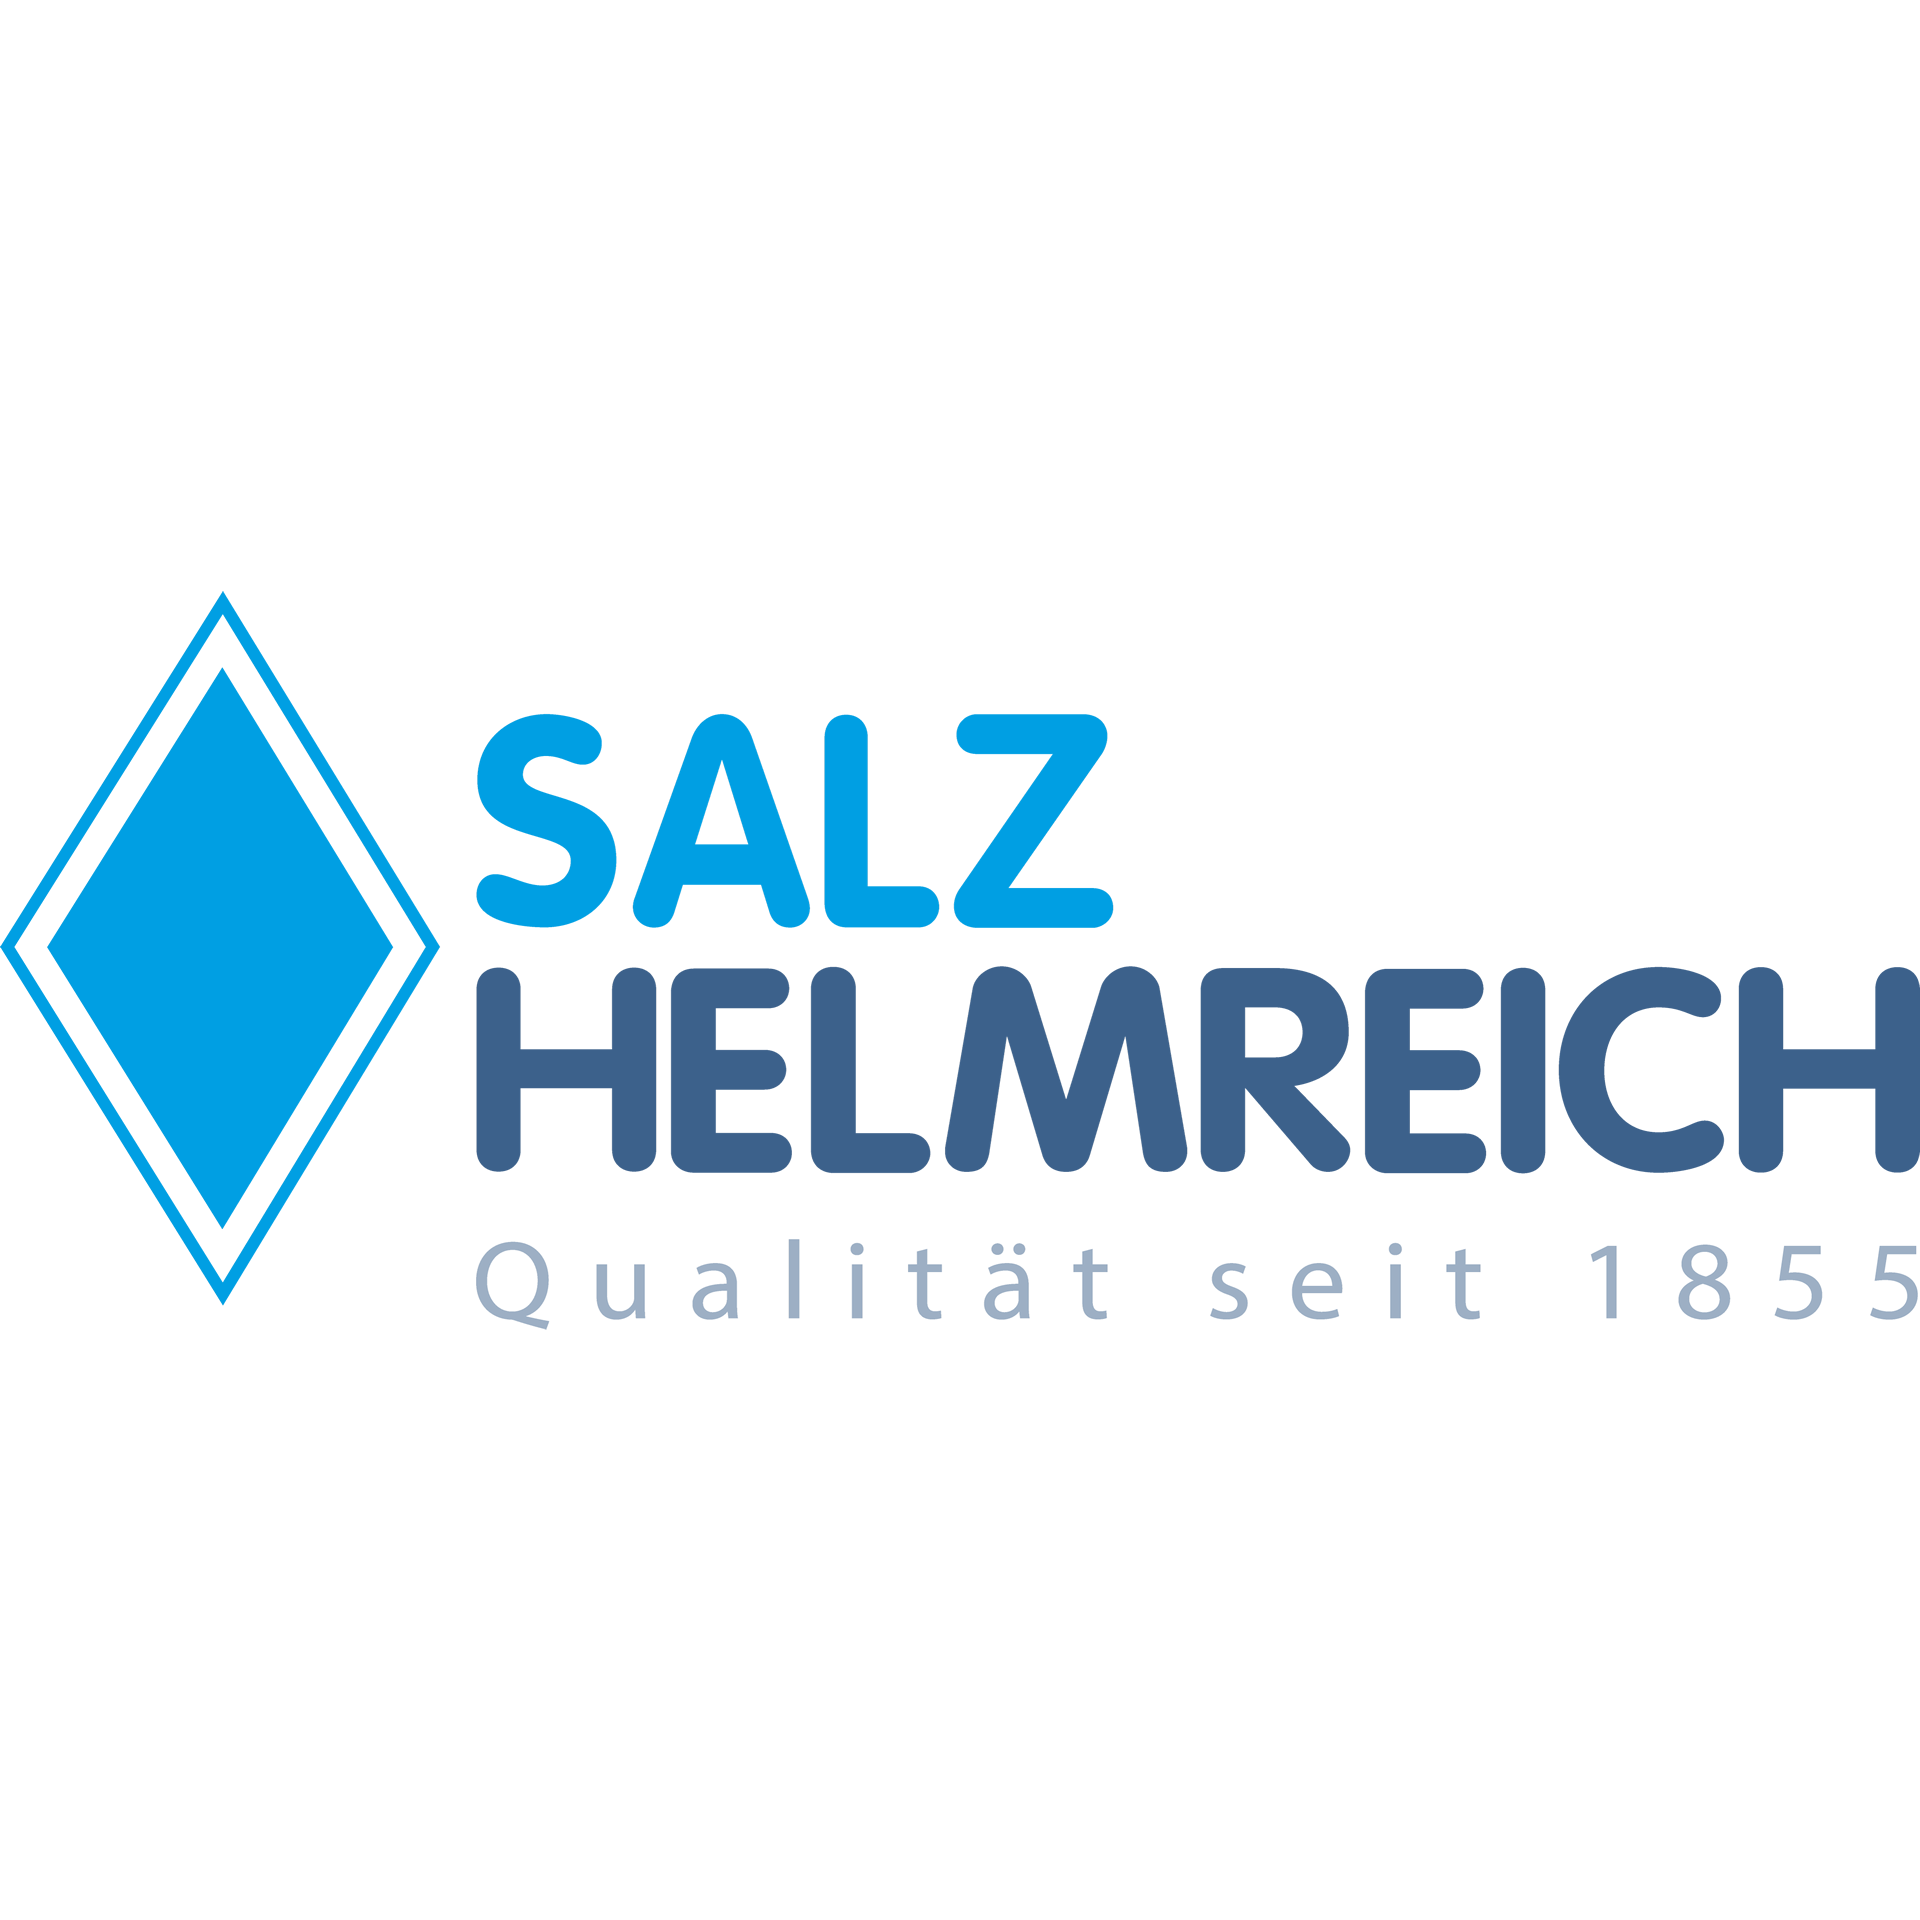 salz helmreich gmbh qualit t seit 1855. Black Bedroom Furniture Sets. Home Design Ideas